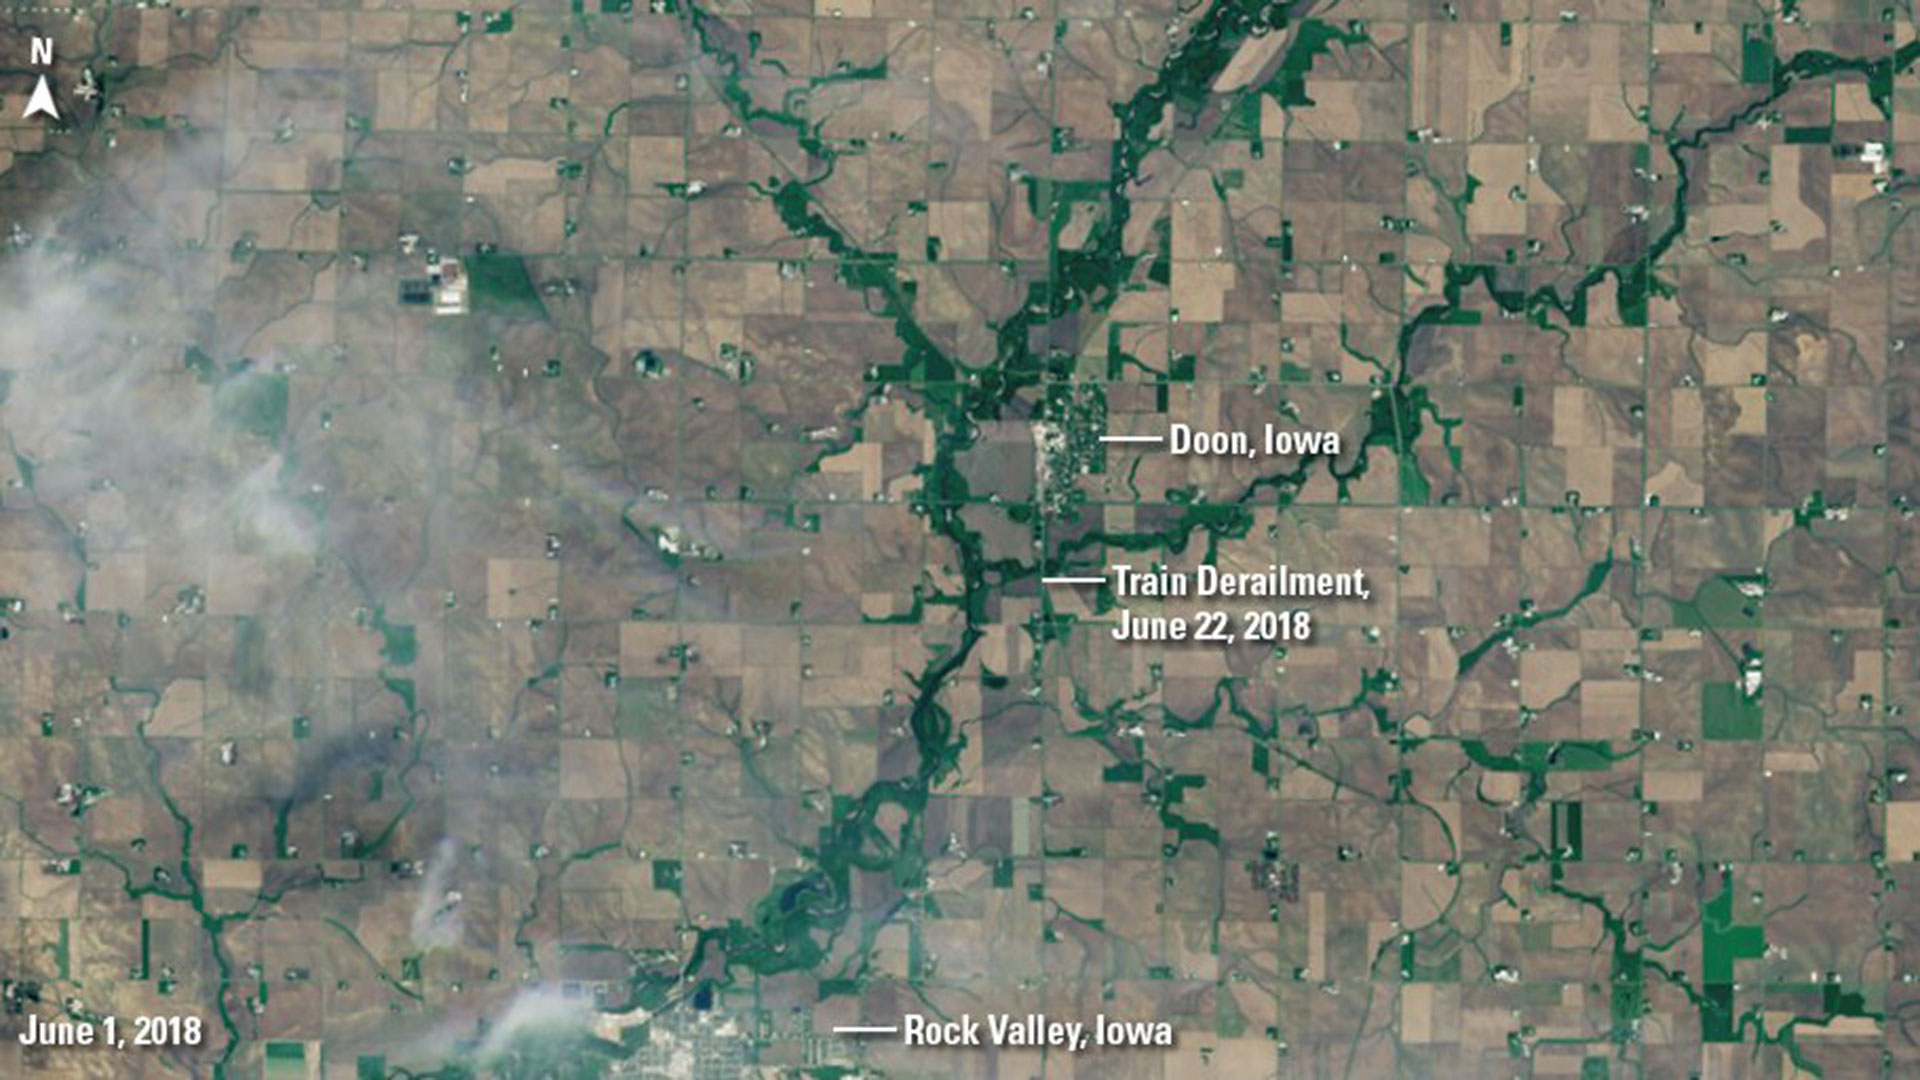 EROS images Doon Iowa before flooding